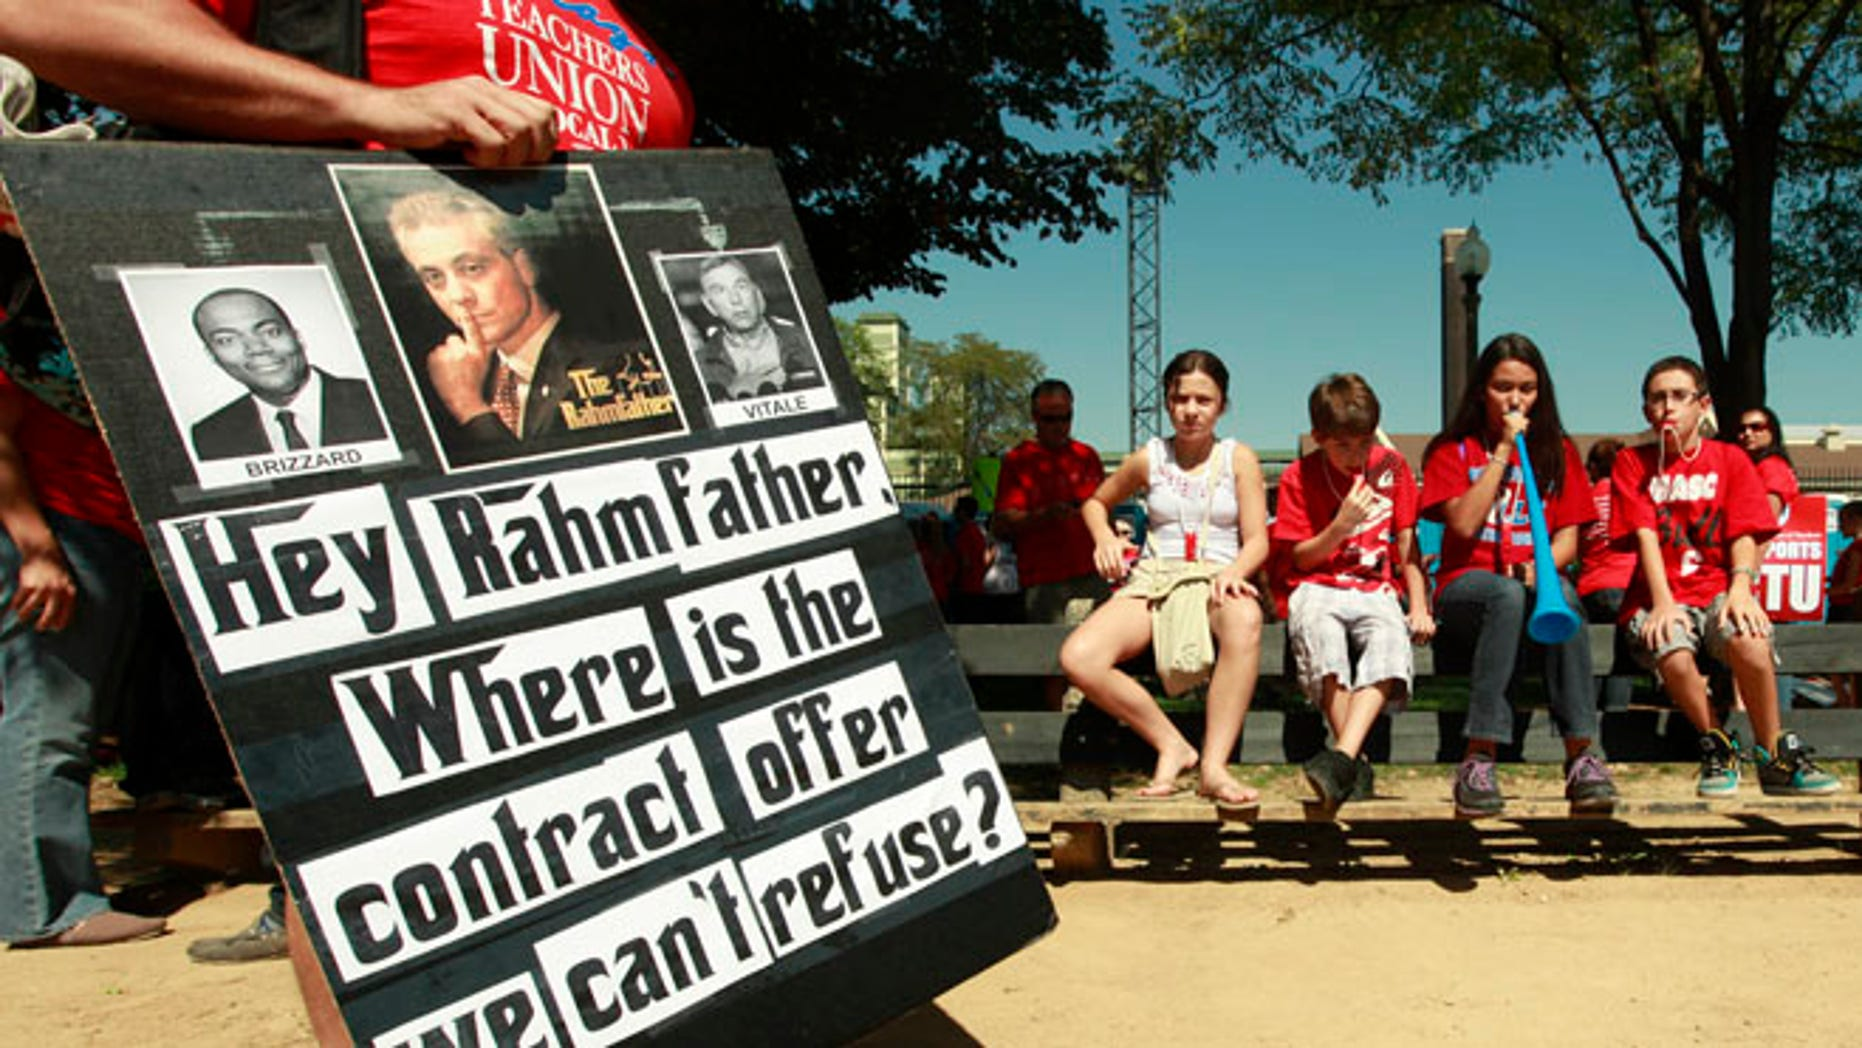 Sept. 15, 2012: A protester holds a sign critical of Chicago mayor Rahm Emanuel during a rally of striking Chicago school teachers in Chicago.